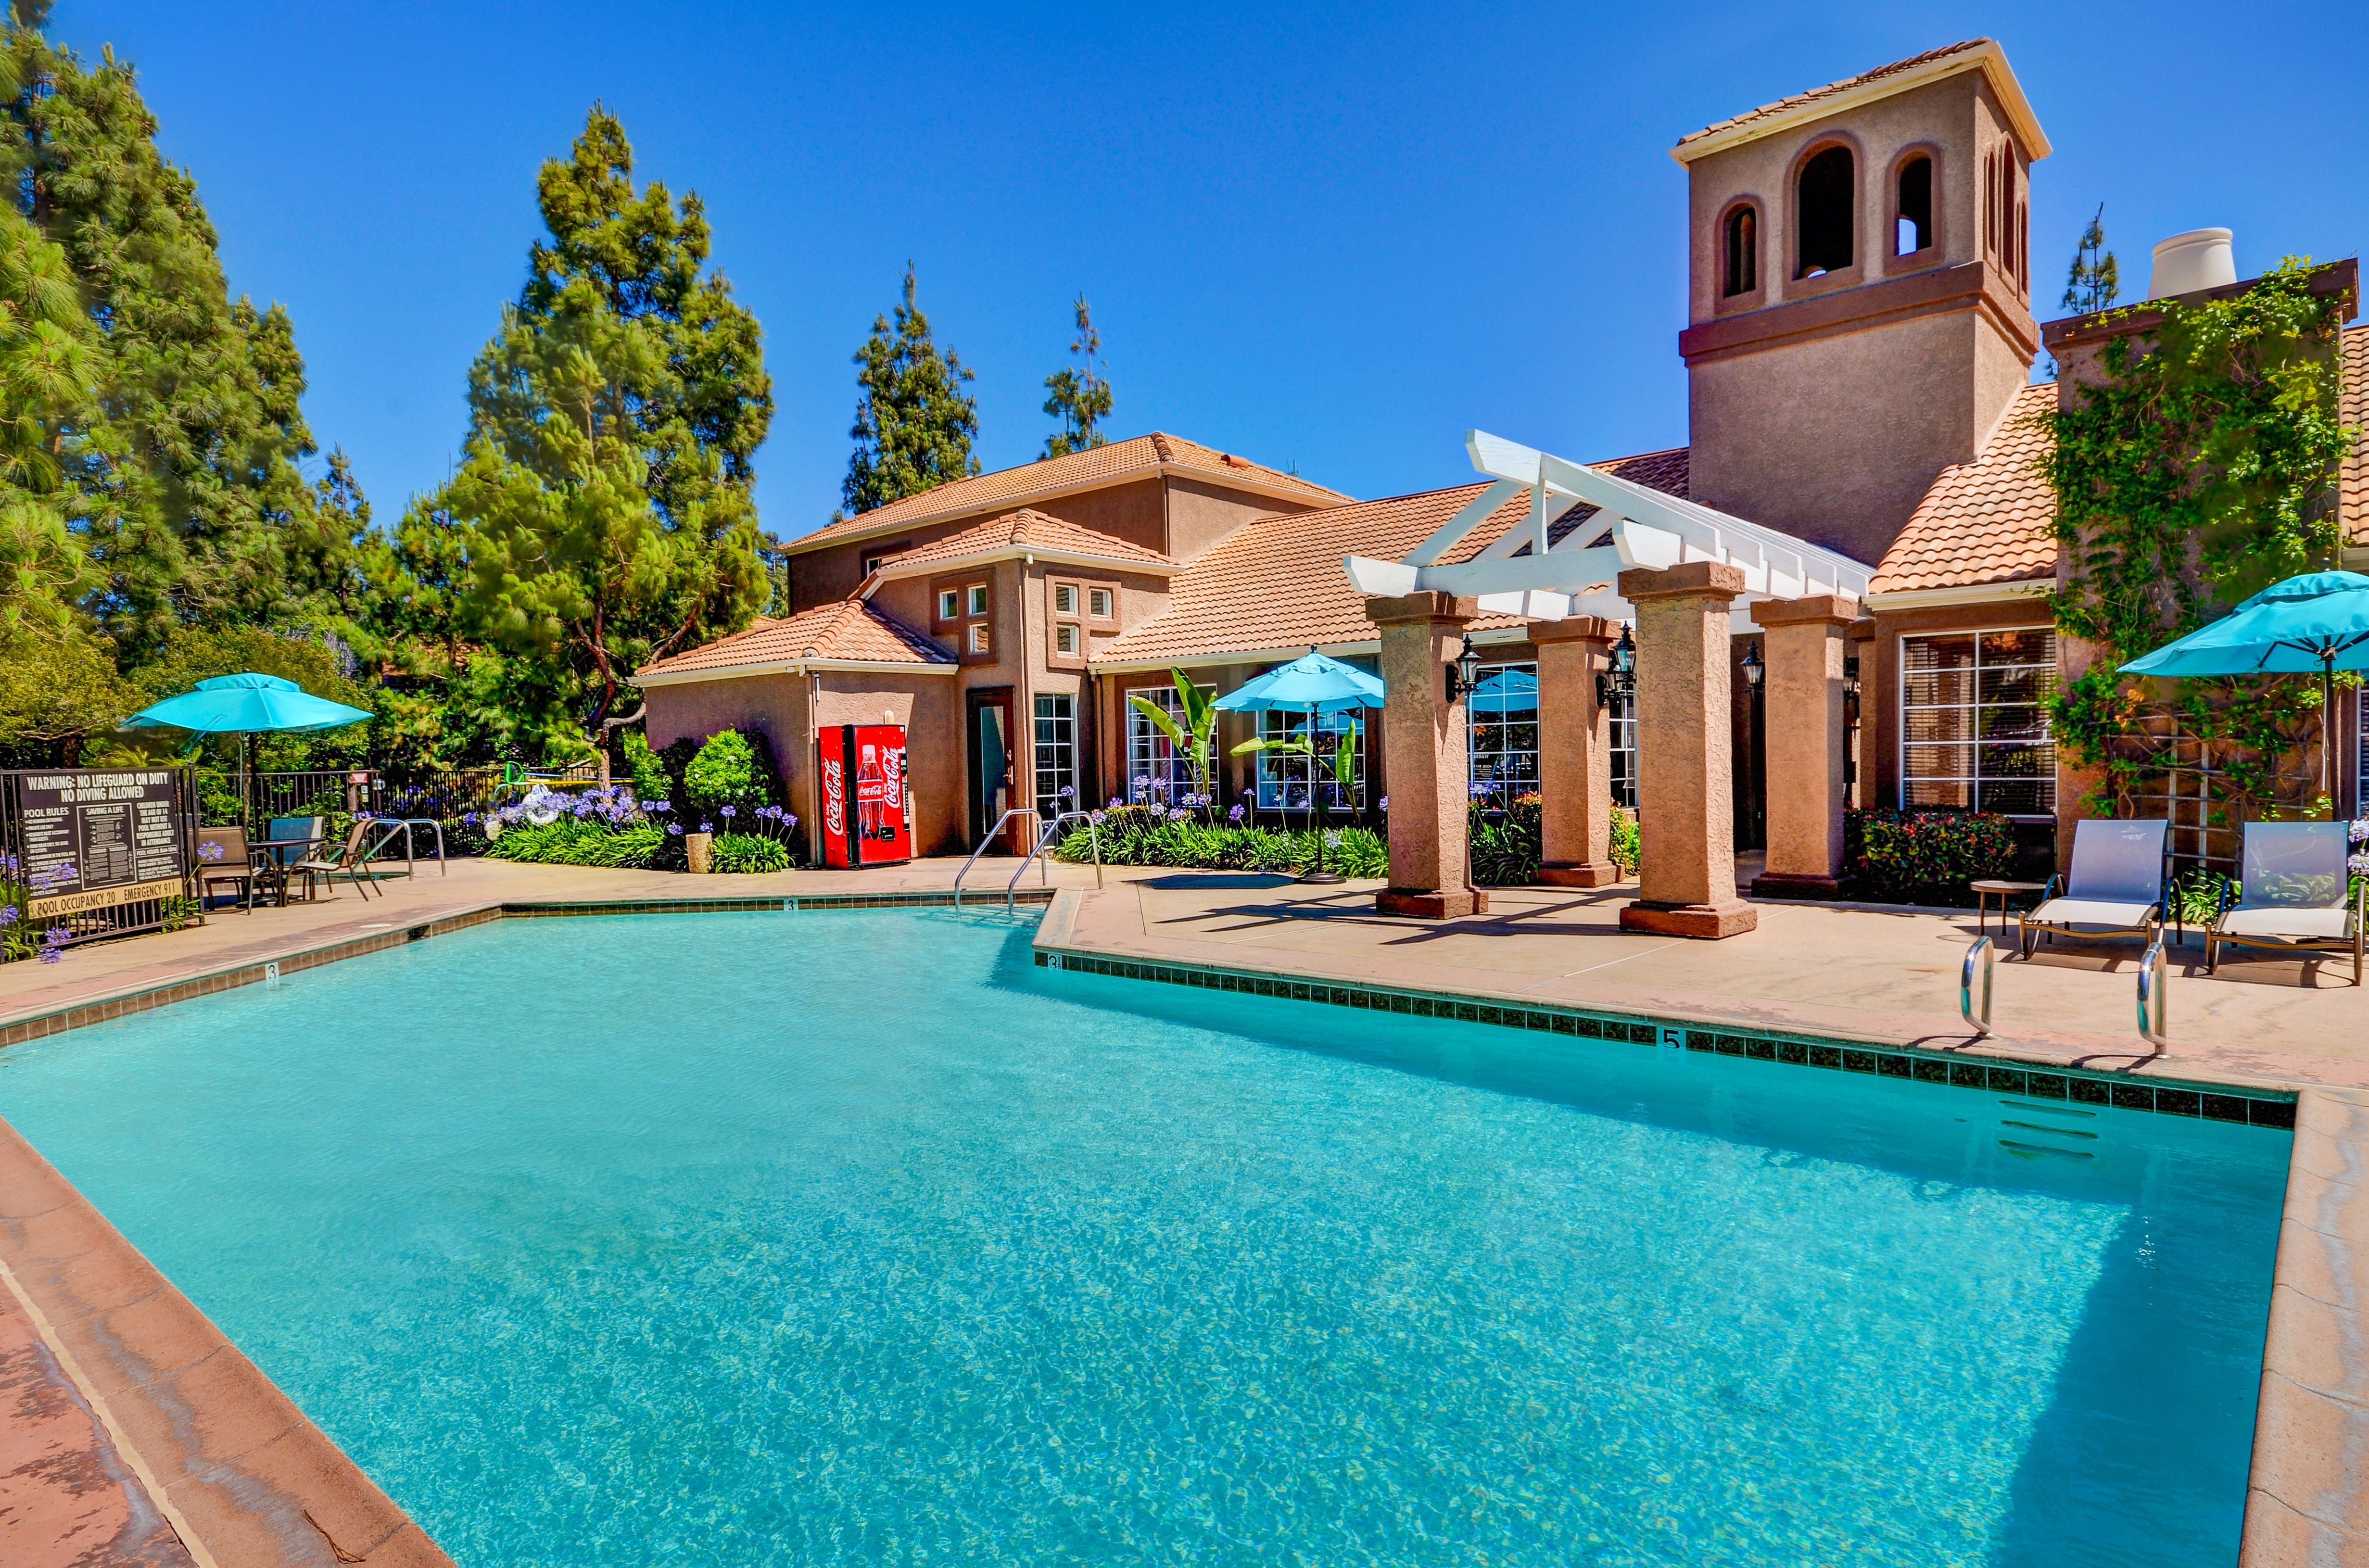 Enticing swimming pool at Sierra del Oro Apartments in